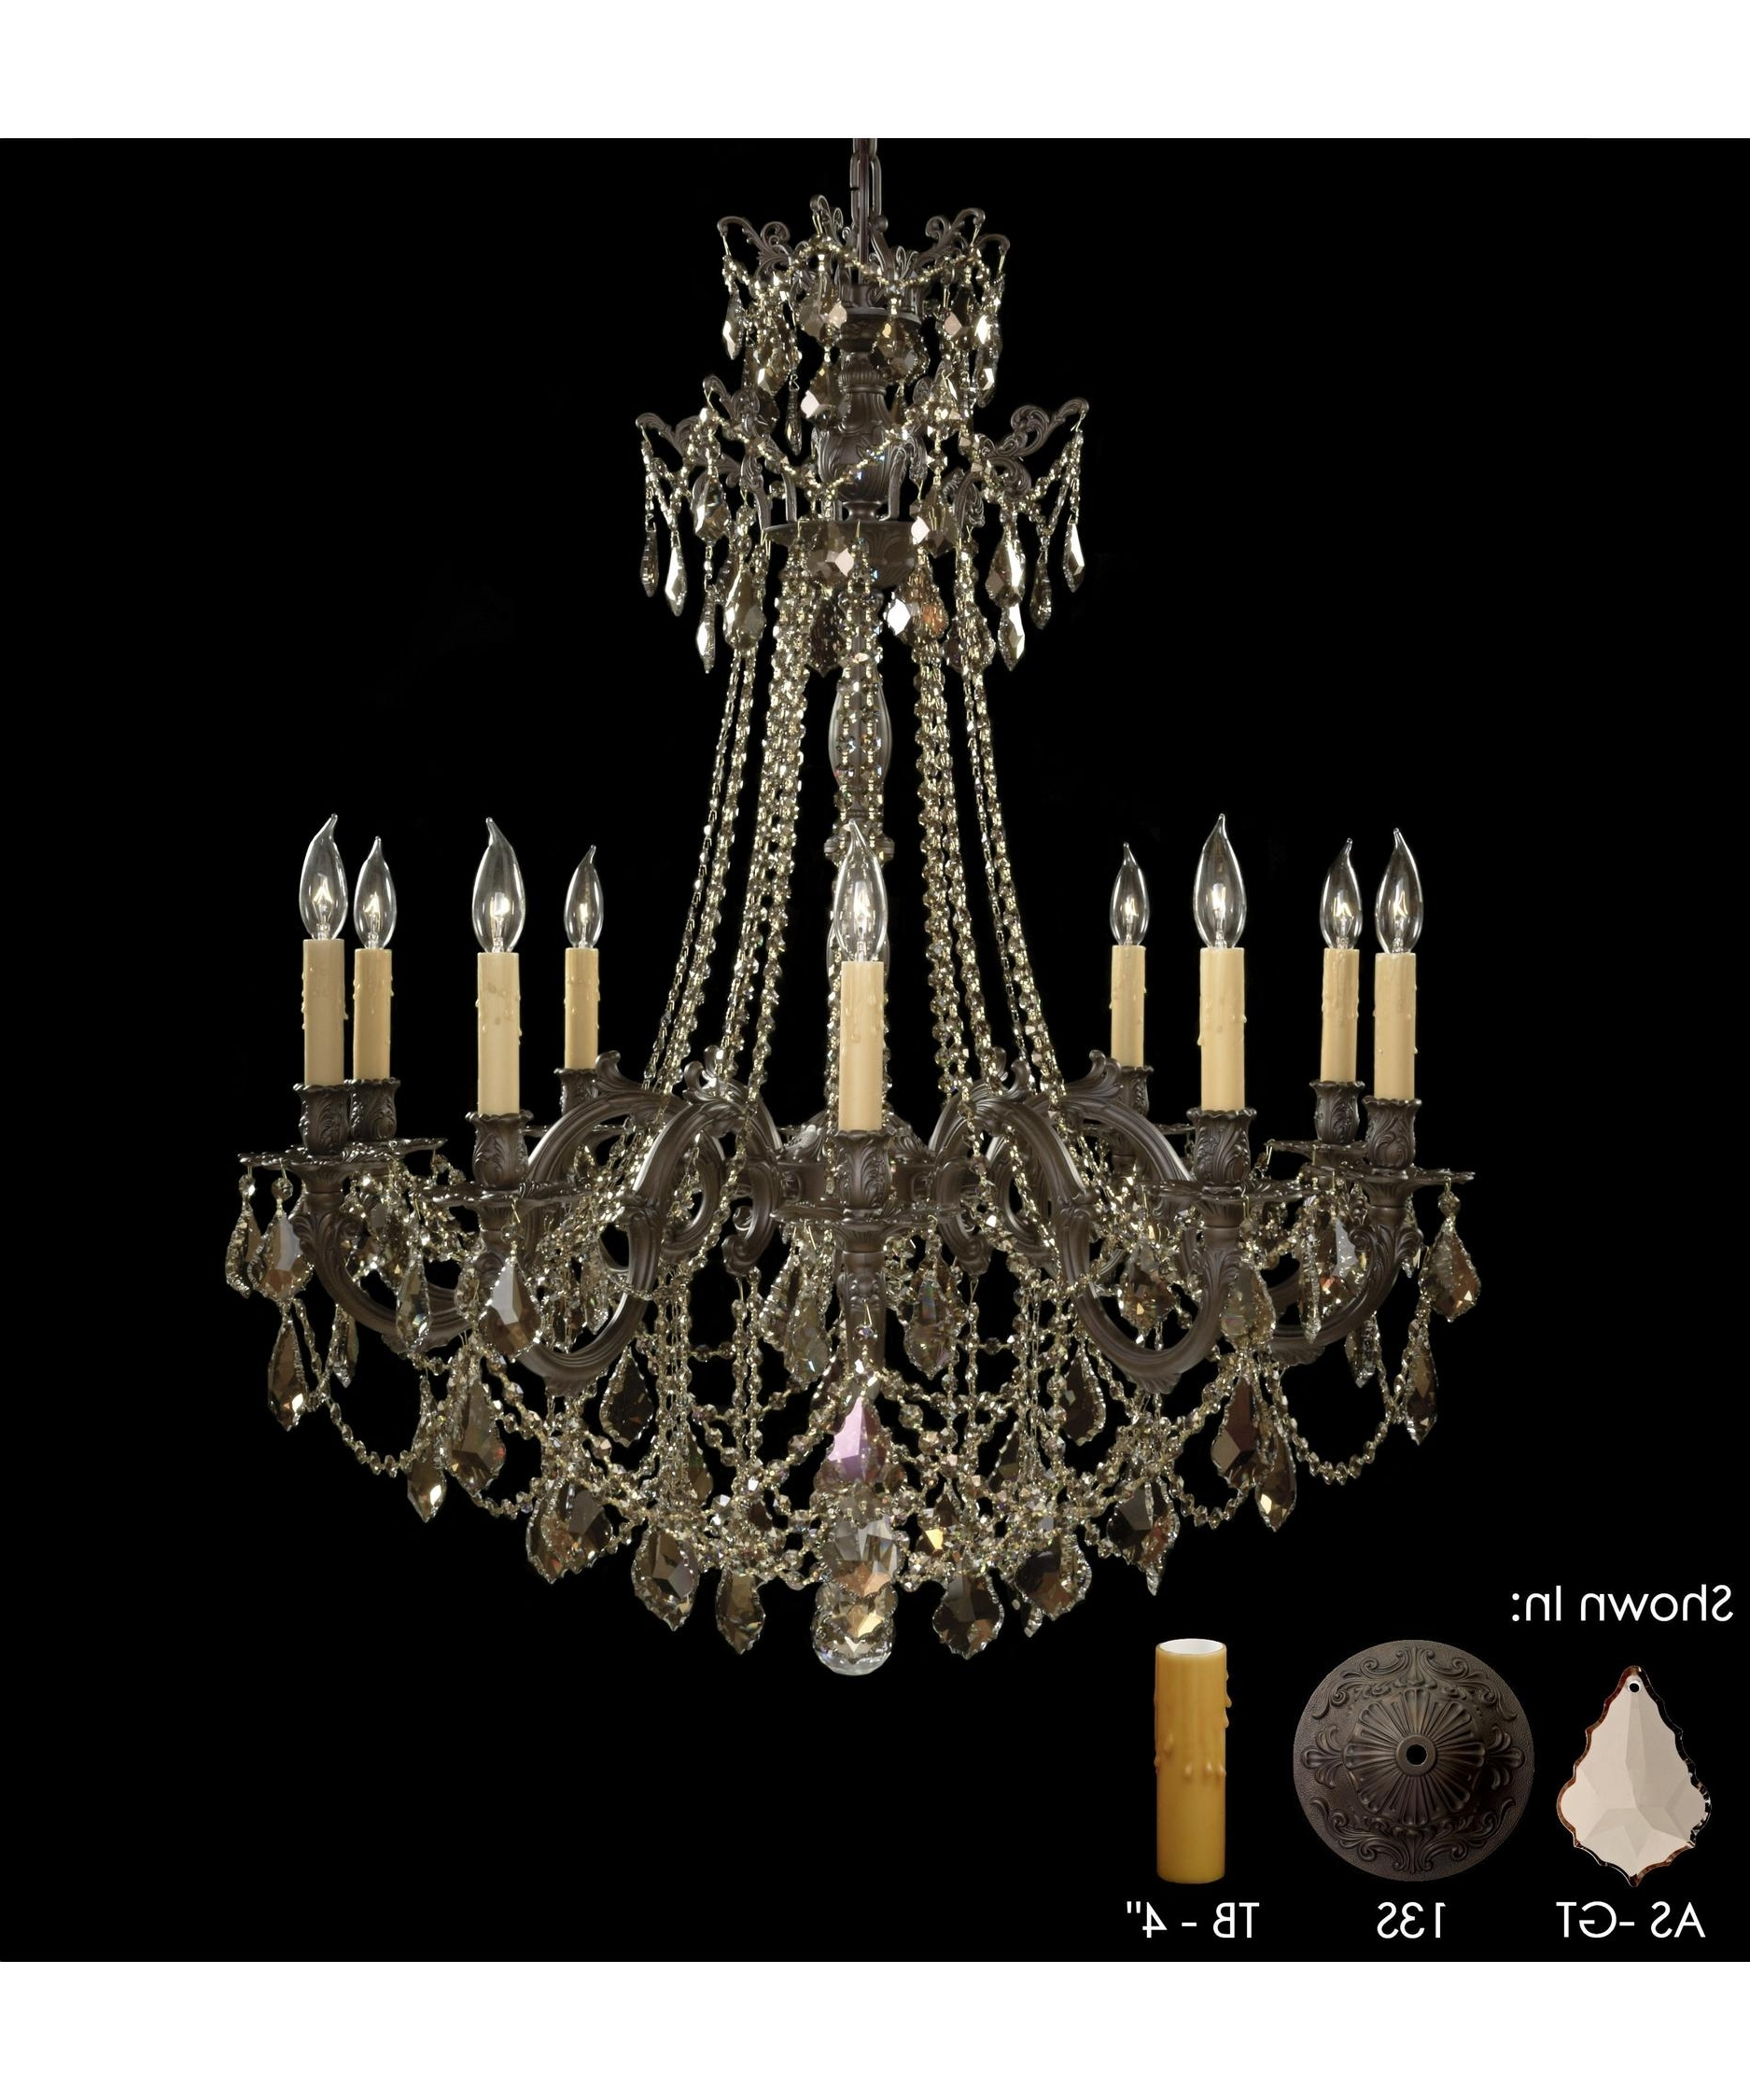 American Brass And Crystal Ch9258 Biella 36 Inch Wide 10 Light Regarding Well Known Brass And Crystal Chandeliers (View 7 of 15)